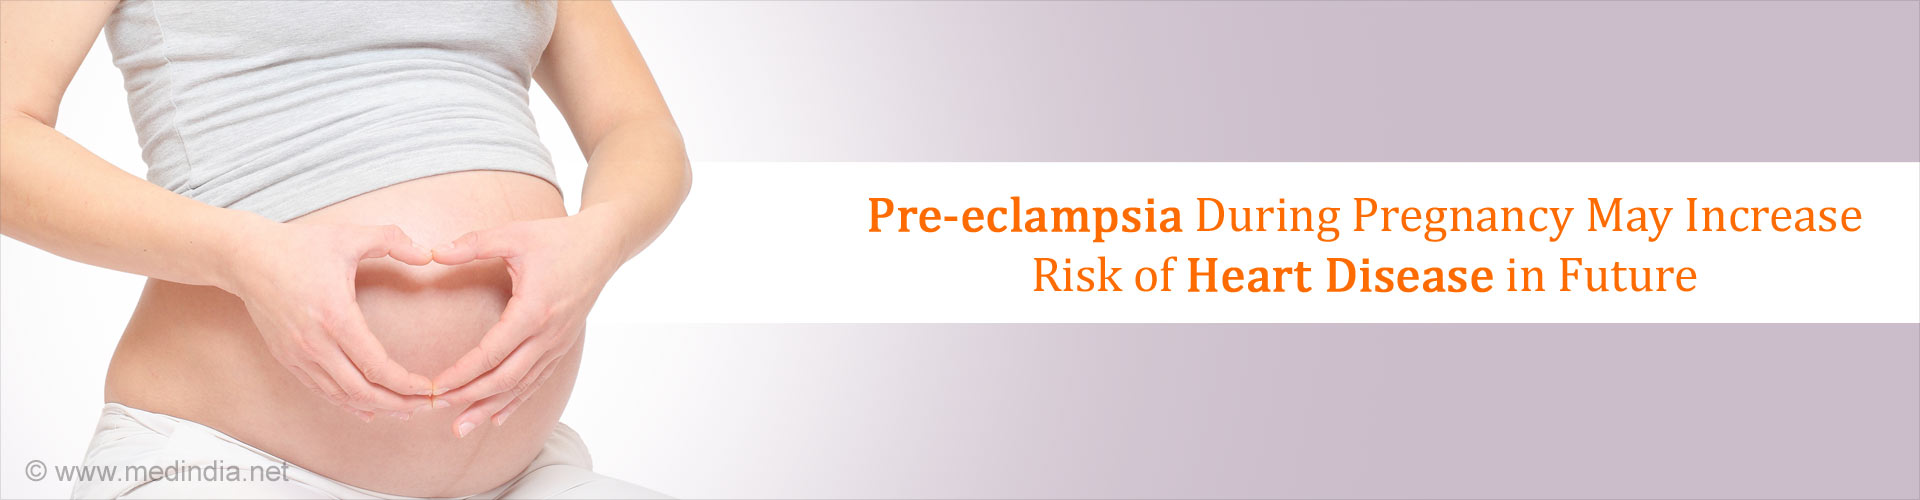 Pre-eclampsia During Pregnancy May Increase Risk of Heart Disease in Future